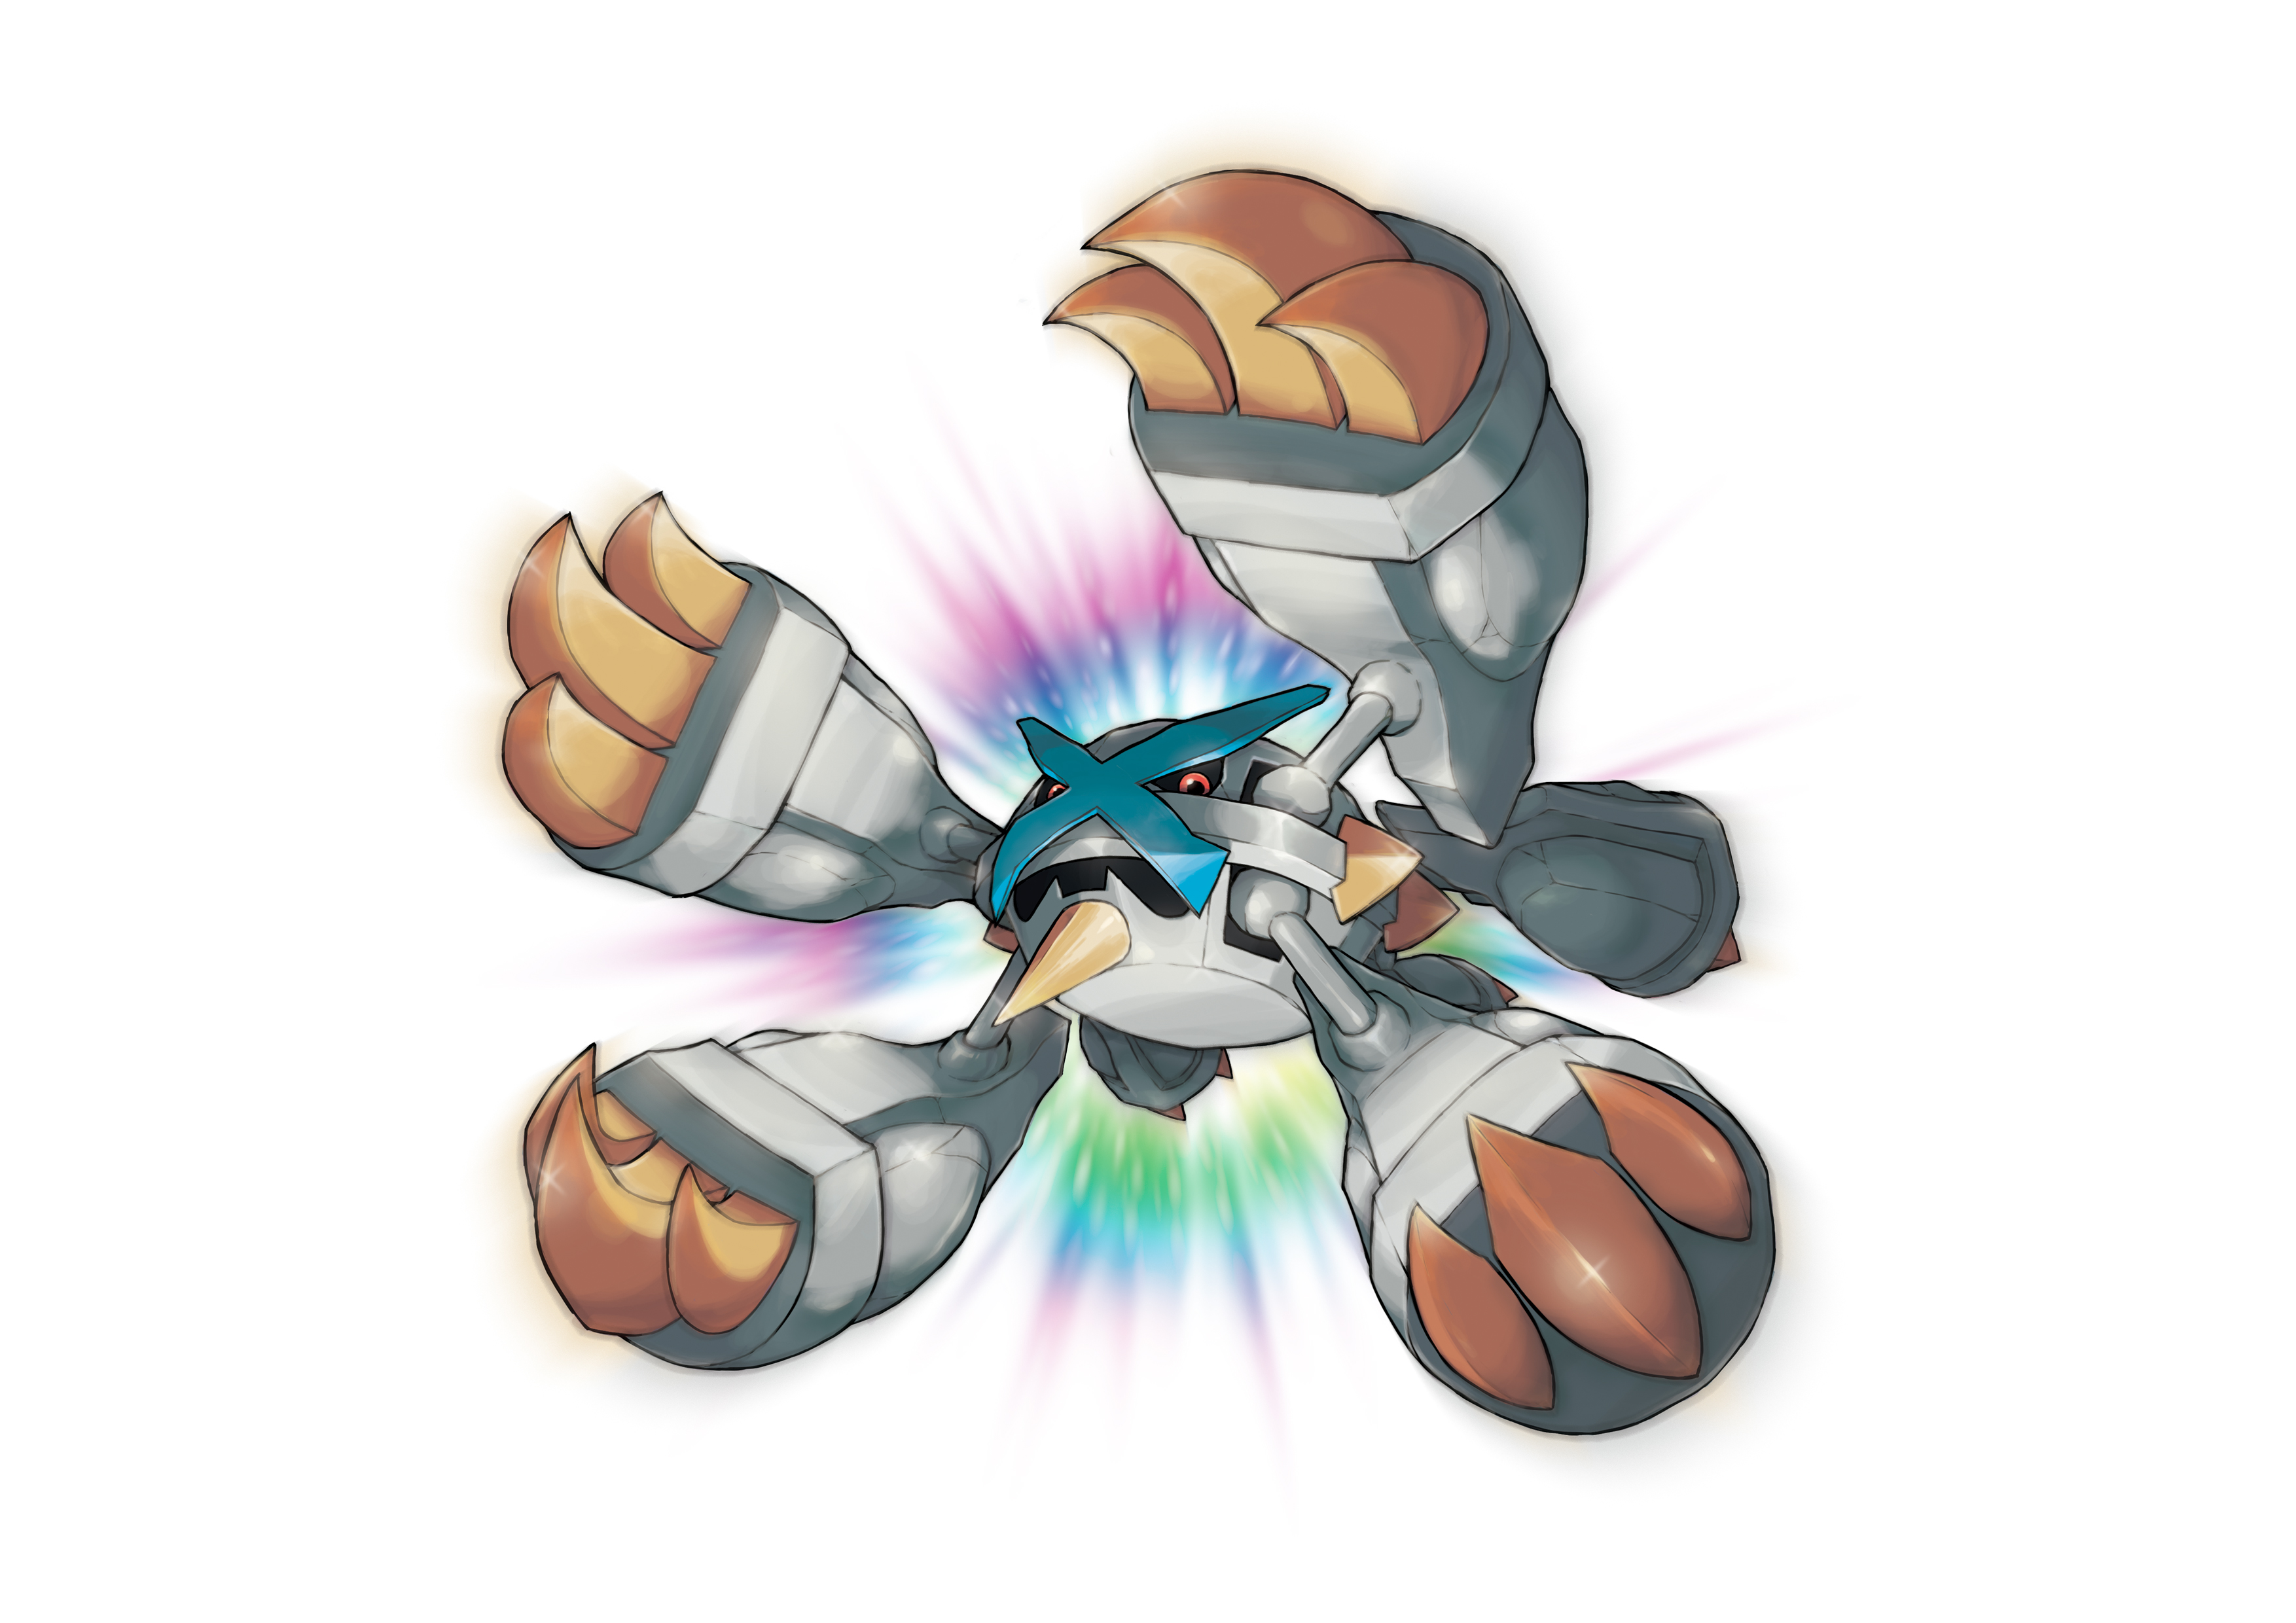 New Megas For Pokemon Omega Ruby And Alpha Sapphire Get